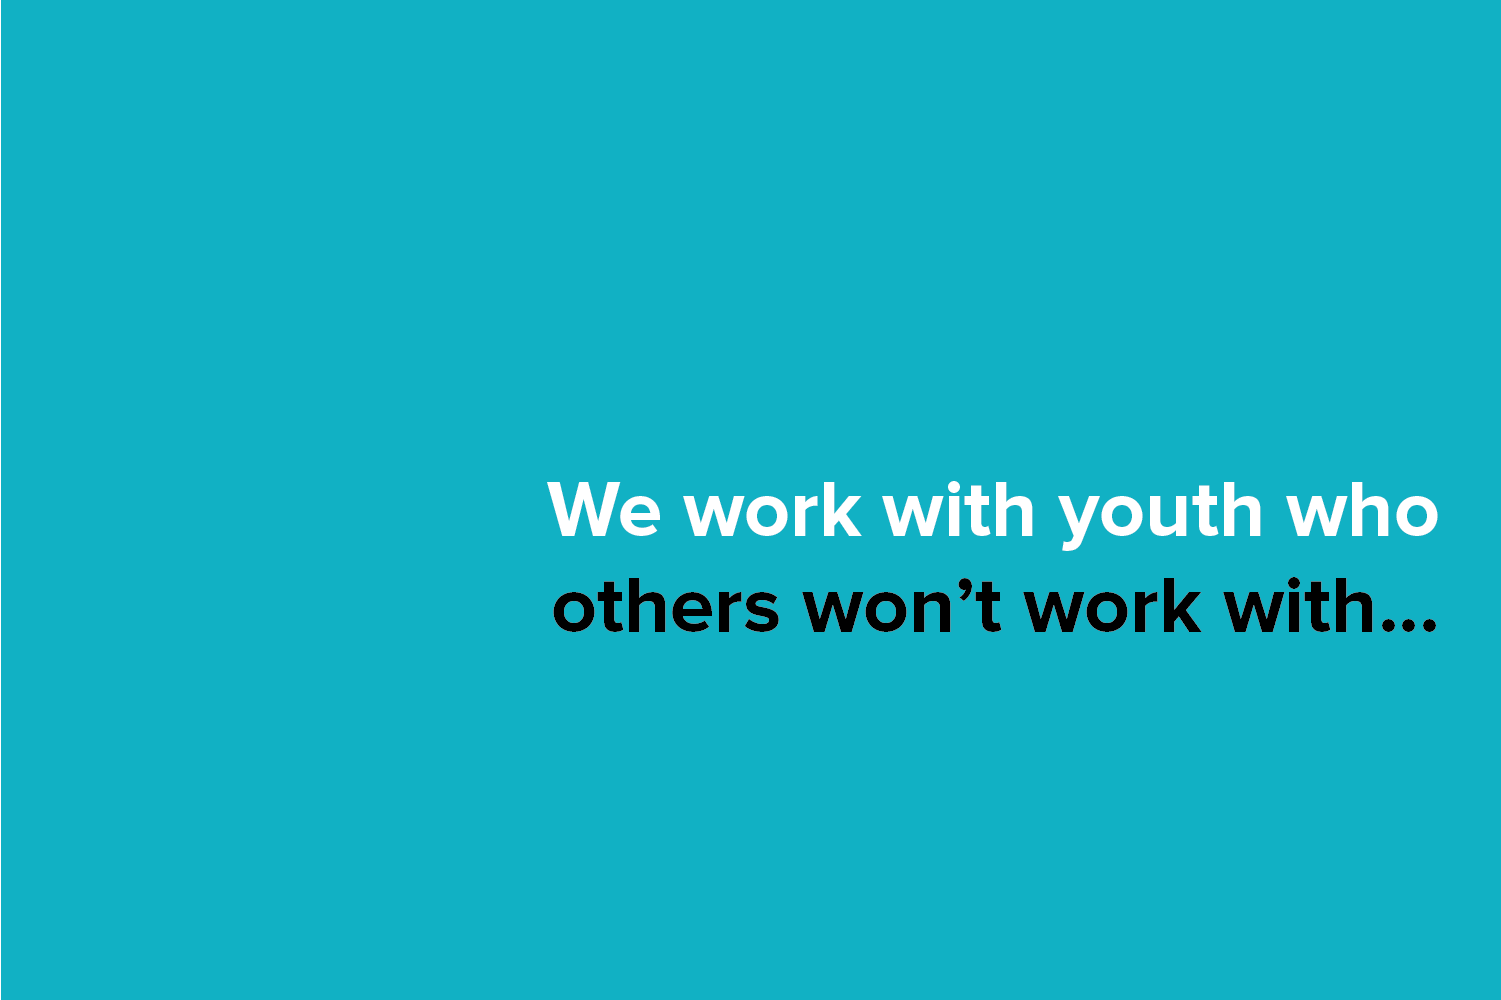 We work with youth who